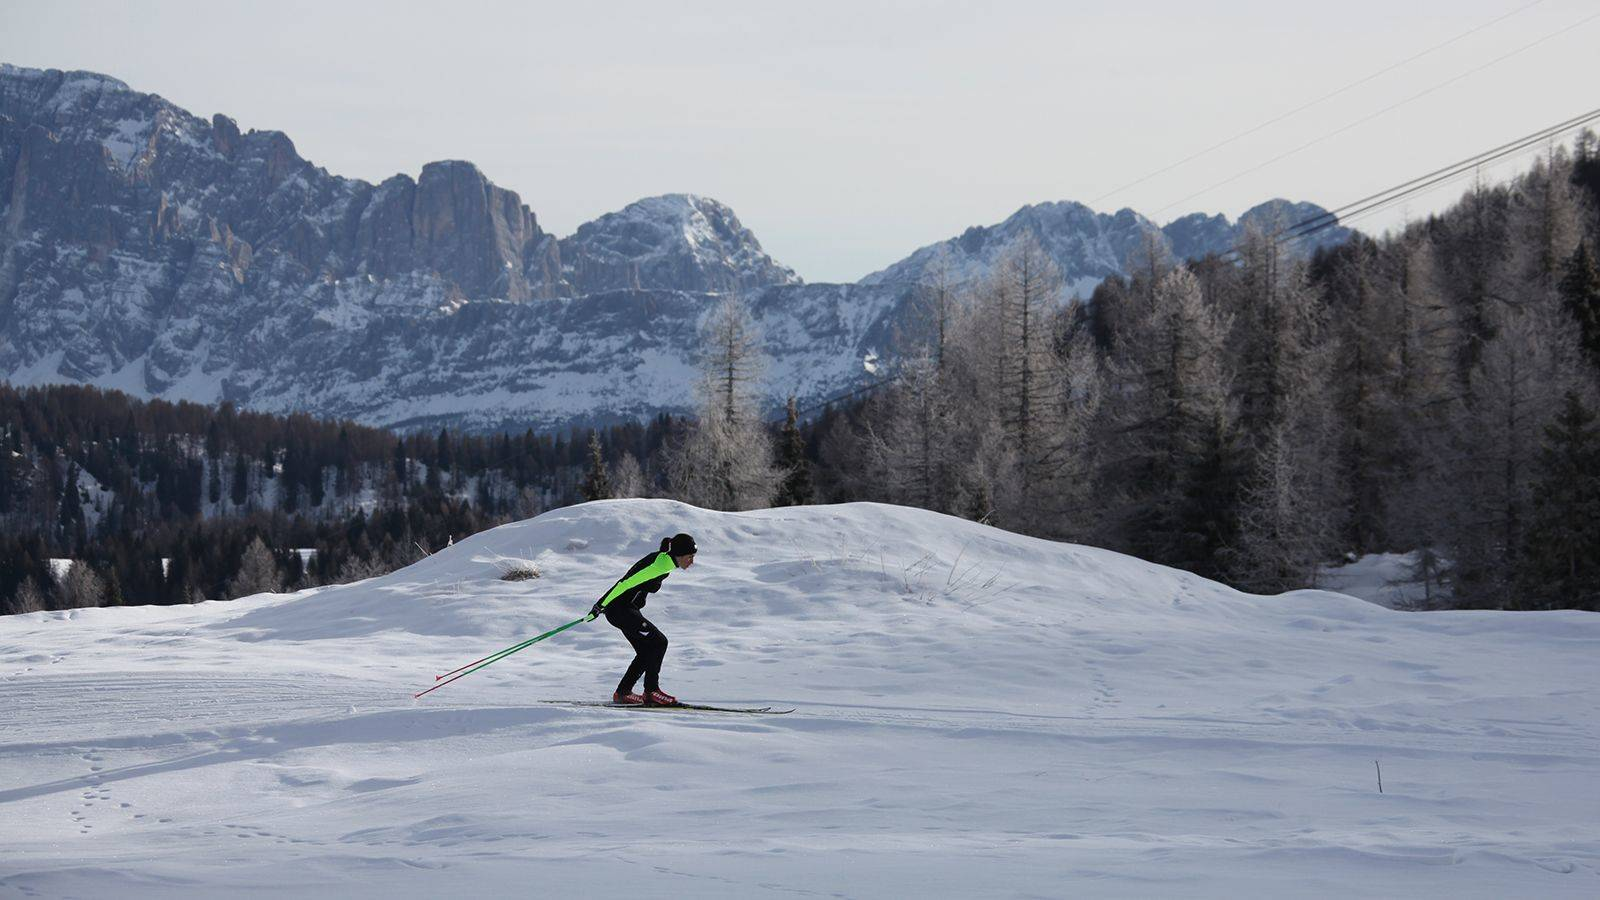 A girl practicing Nordic skiing at the snowy slopes of Passo San Pellegrino